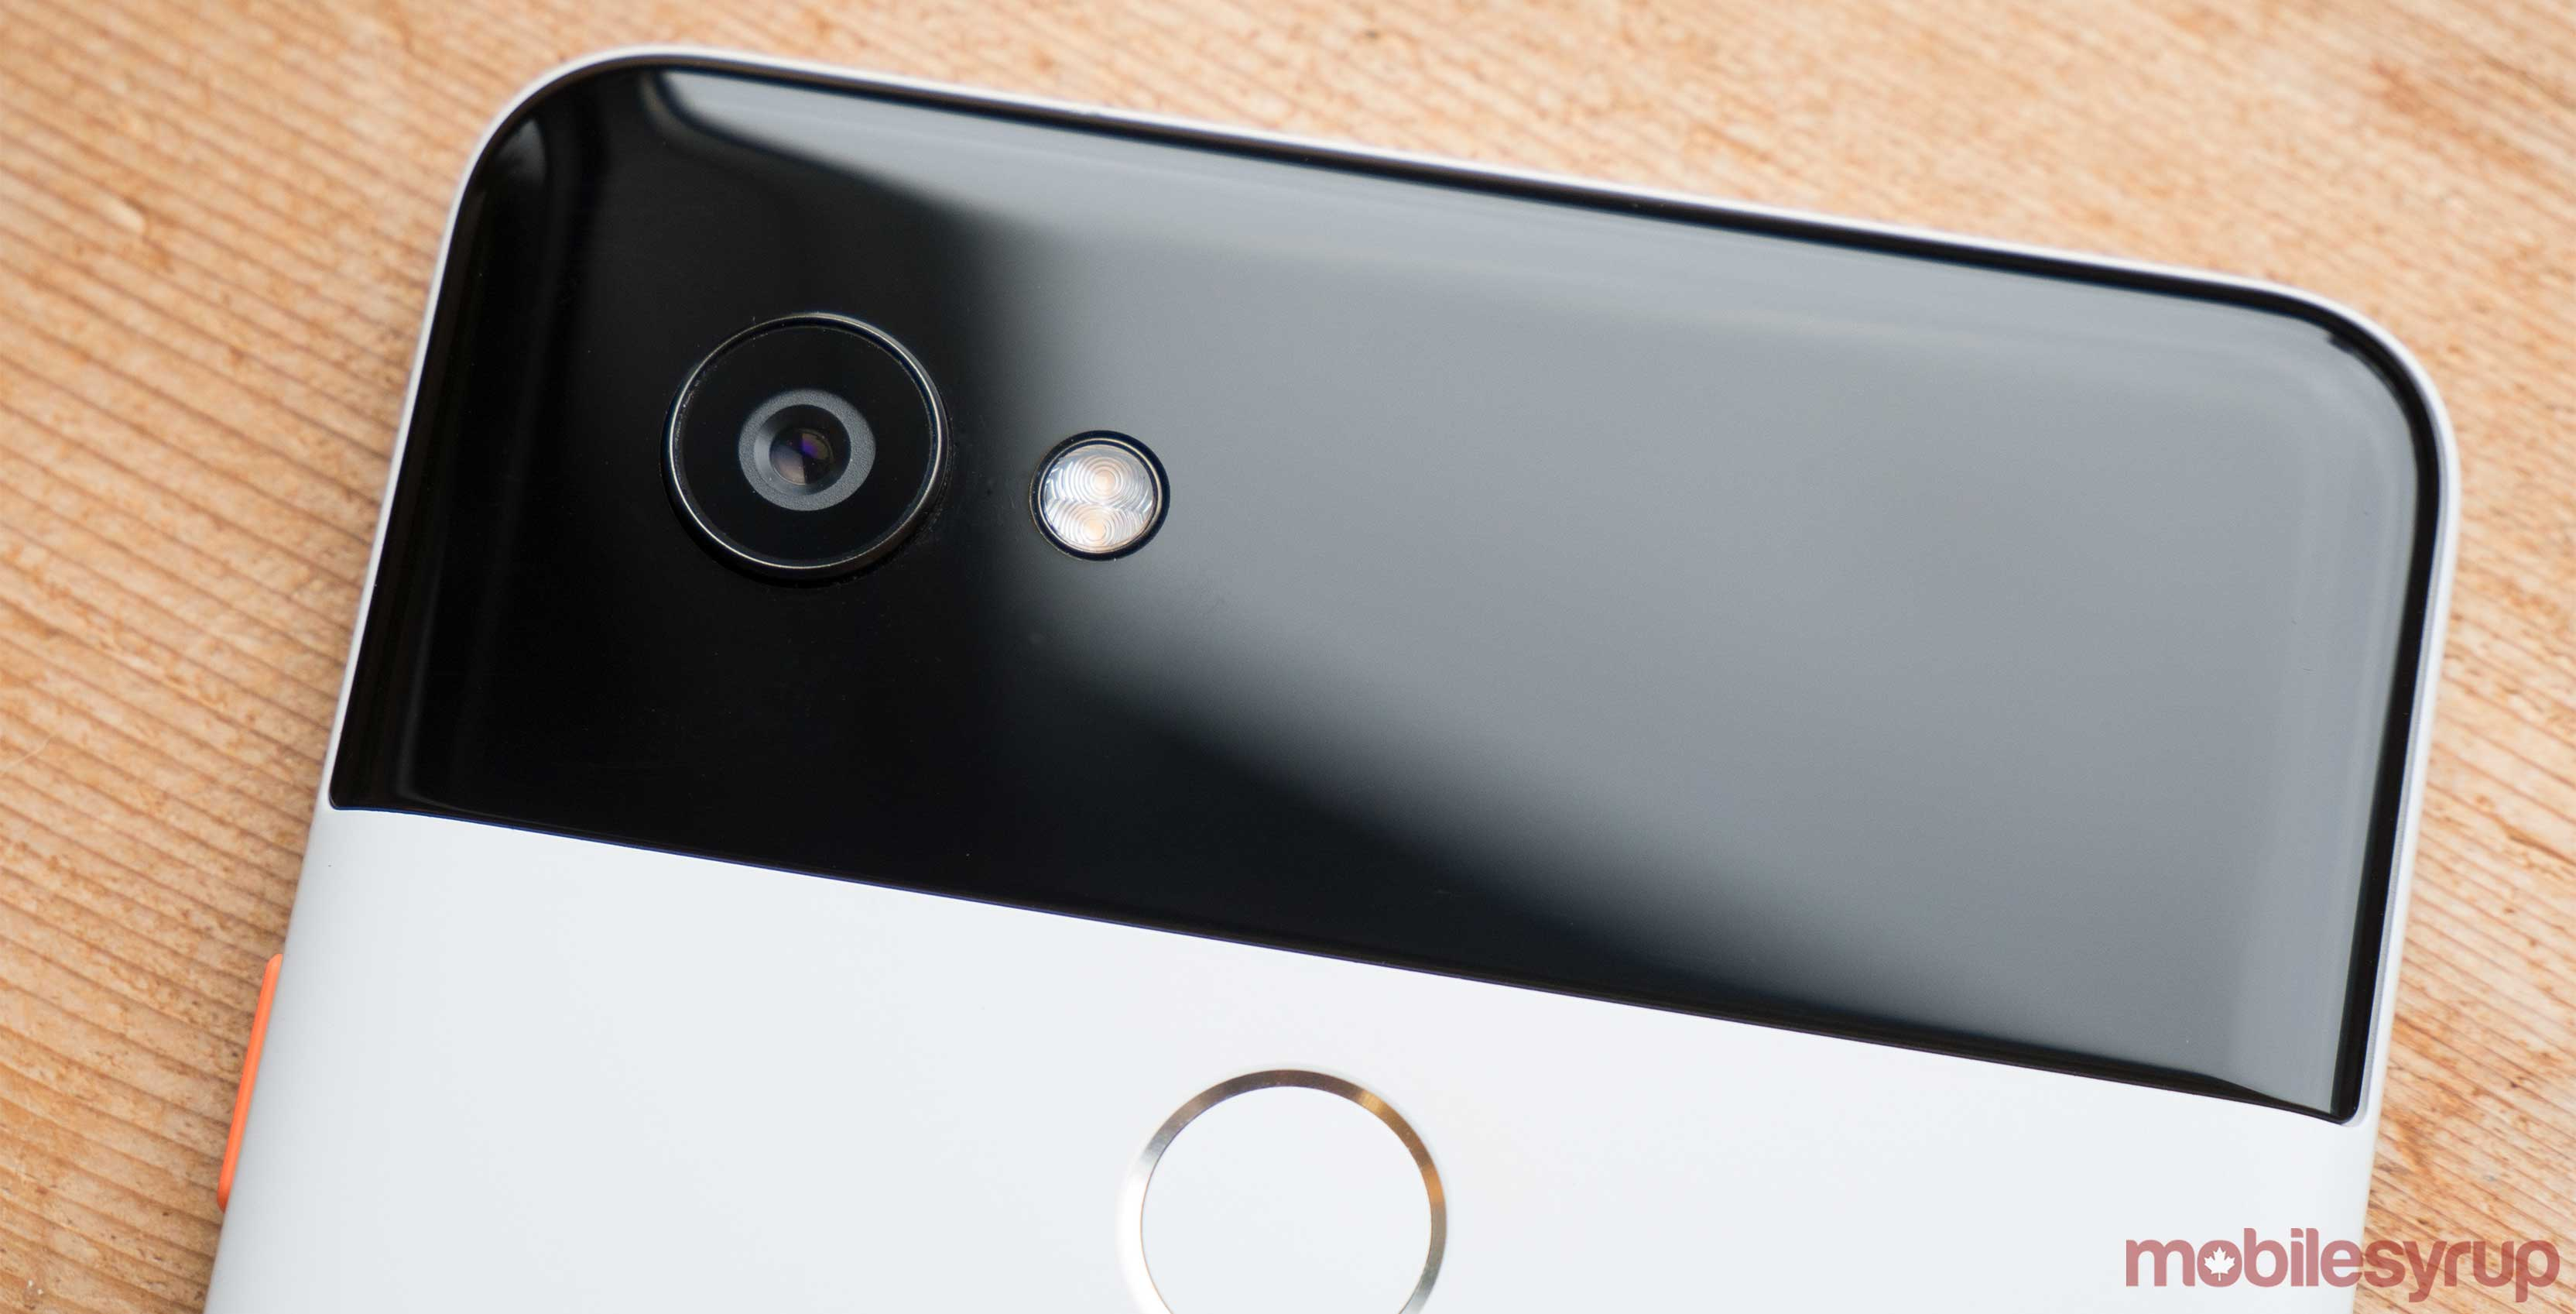 Google Lens rolls out to all Android users with Photos